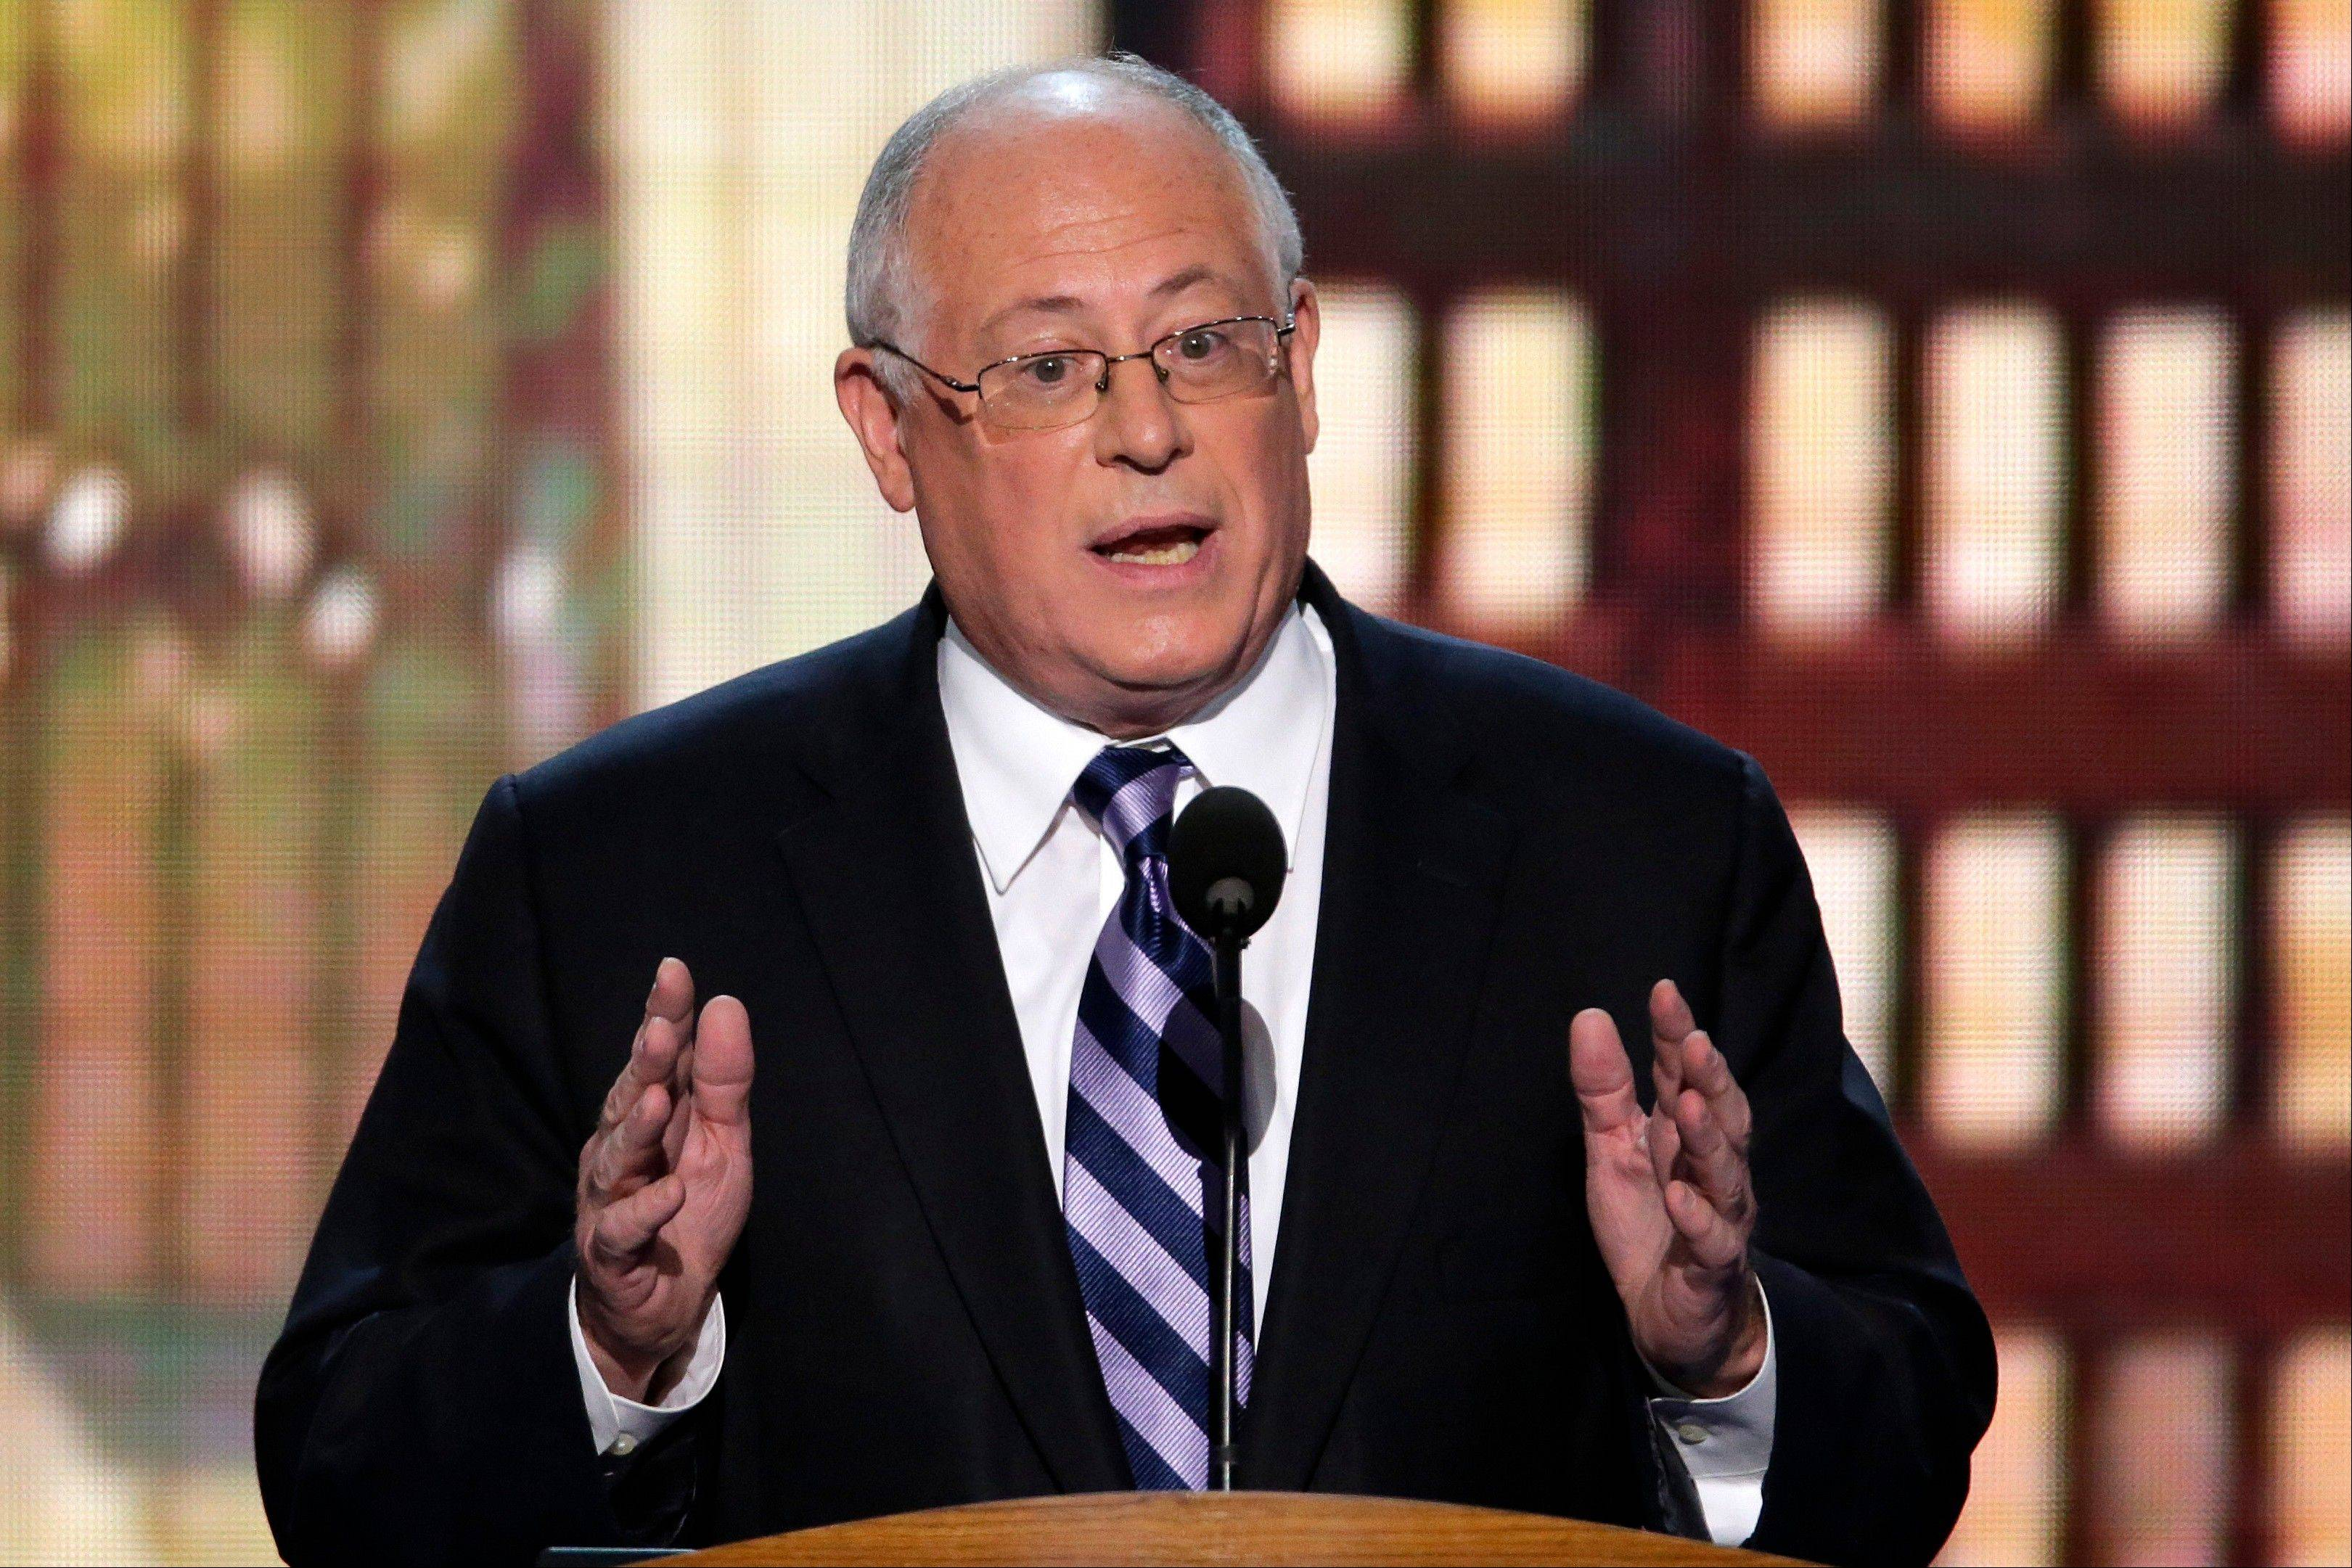 Illinois Gov. Pat Quinn addresses the Democratic National Convention in Charlotte, N.C., on Tuesday, Sept. 4, 2012.